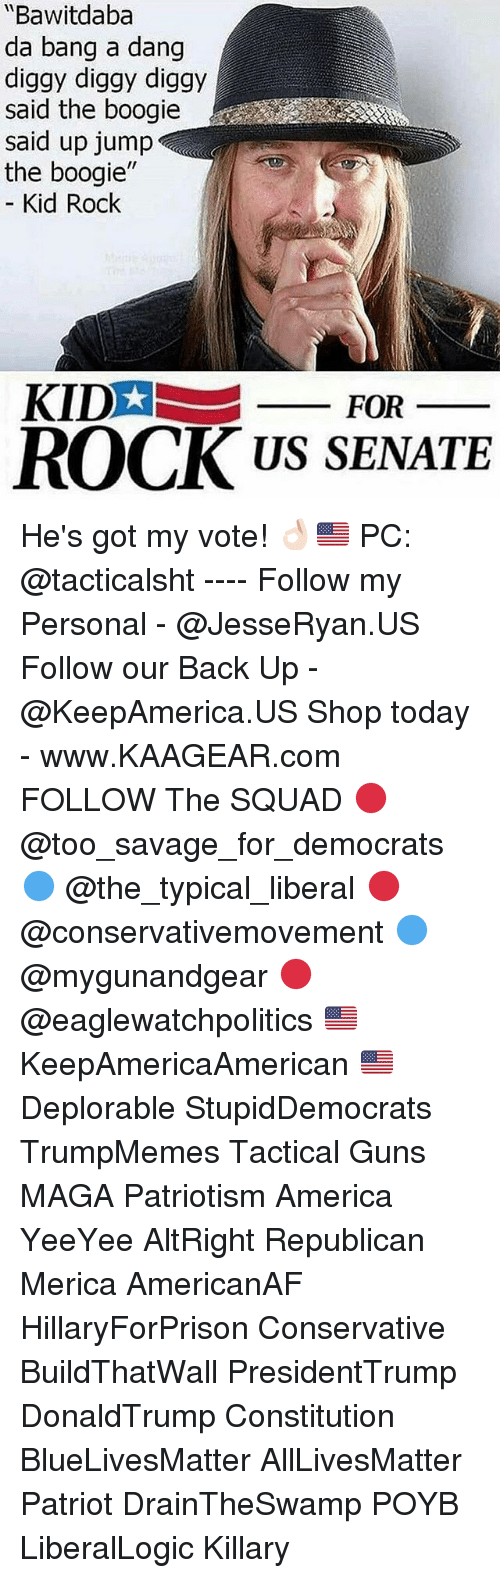 """All Lives Matter, America, and Guns: """"Bawitdaba  da bang a dang  diggy diggy diggy  said the boogie  said up jump  the boogie""""  Kid Rock  KIDA ㅡㅡ FOR  ROCK US SENATE He's got my vote! 👌🏻🇺🇸 PC: @tacticalsht ---- Follow my Personal - @JesseRyan.US Follow our Back Up - @KeepAmerica.US Shop today - www.KAAGEAR.com FOLLOW The SQUAD 🔴 @too_savage_for_democrats 🔵 @the_typical_liberal 🔴 @conservativemovement 🔵 @mygunandgear 🔴 @eaglewatchpolitics 🇺🇸 KeepAmericaAmerican 🇺🇸 Deplorable StupidDemocrats TrumpMemes Tactical Guns MAGA Patriotism America YeeYee AltRight Republican Merica AmericanAF HillaryForPrison Conservative BuildThatWall PresidentTrump DonaldTrump Constitution BlueLivesMatter AllLivesMatter Patriot DrainTheSwamp POYB LiberalLogic Killary"""